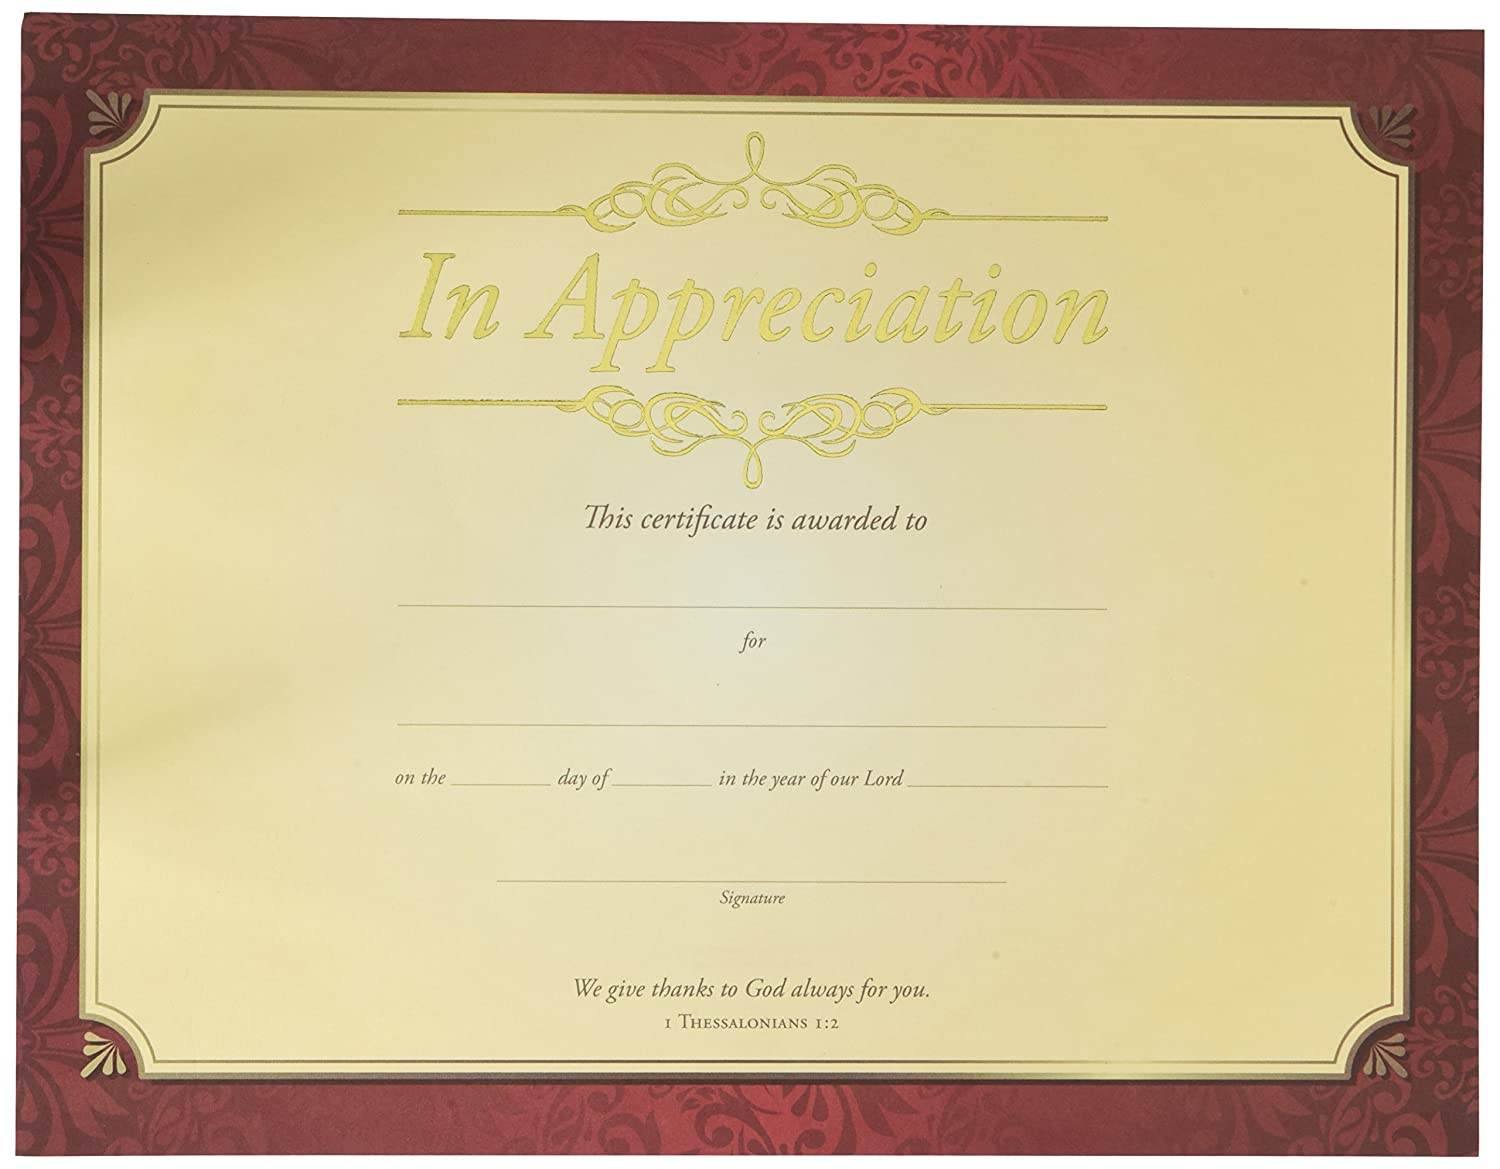 Amazon certificate appreciation in apprecication gold amazon certificate appreciation in apprecication gold foil embossed premium stock pack of 6 office products yadclub Choice Image